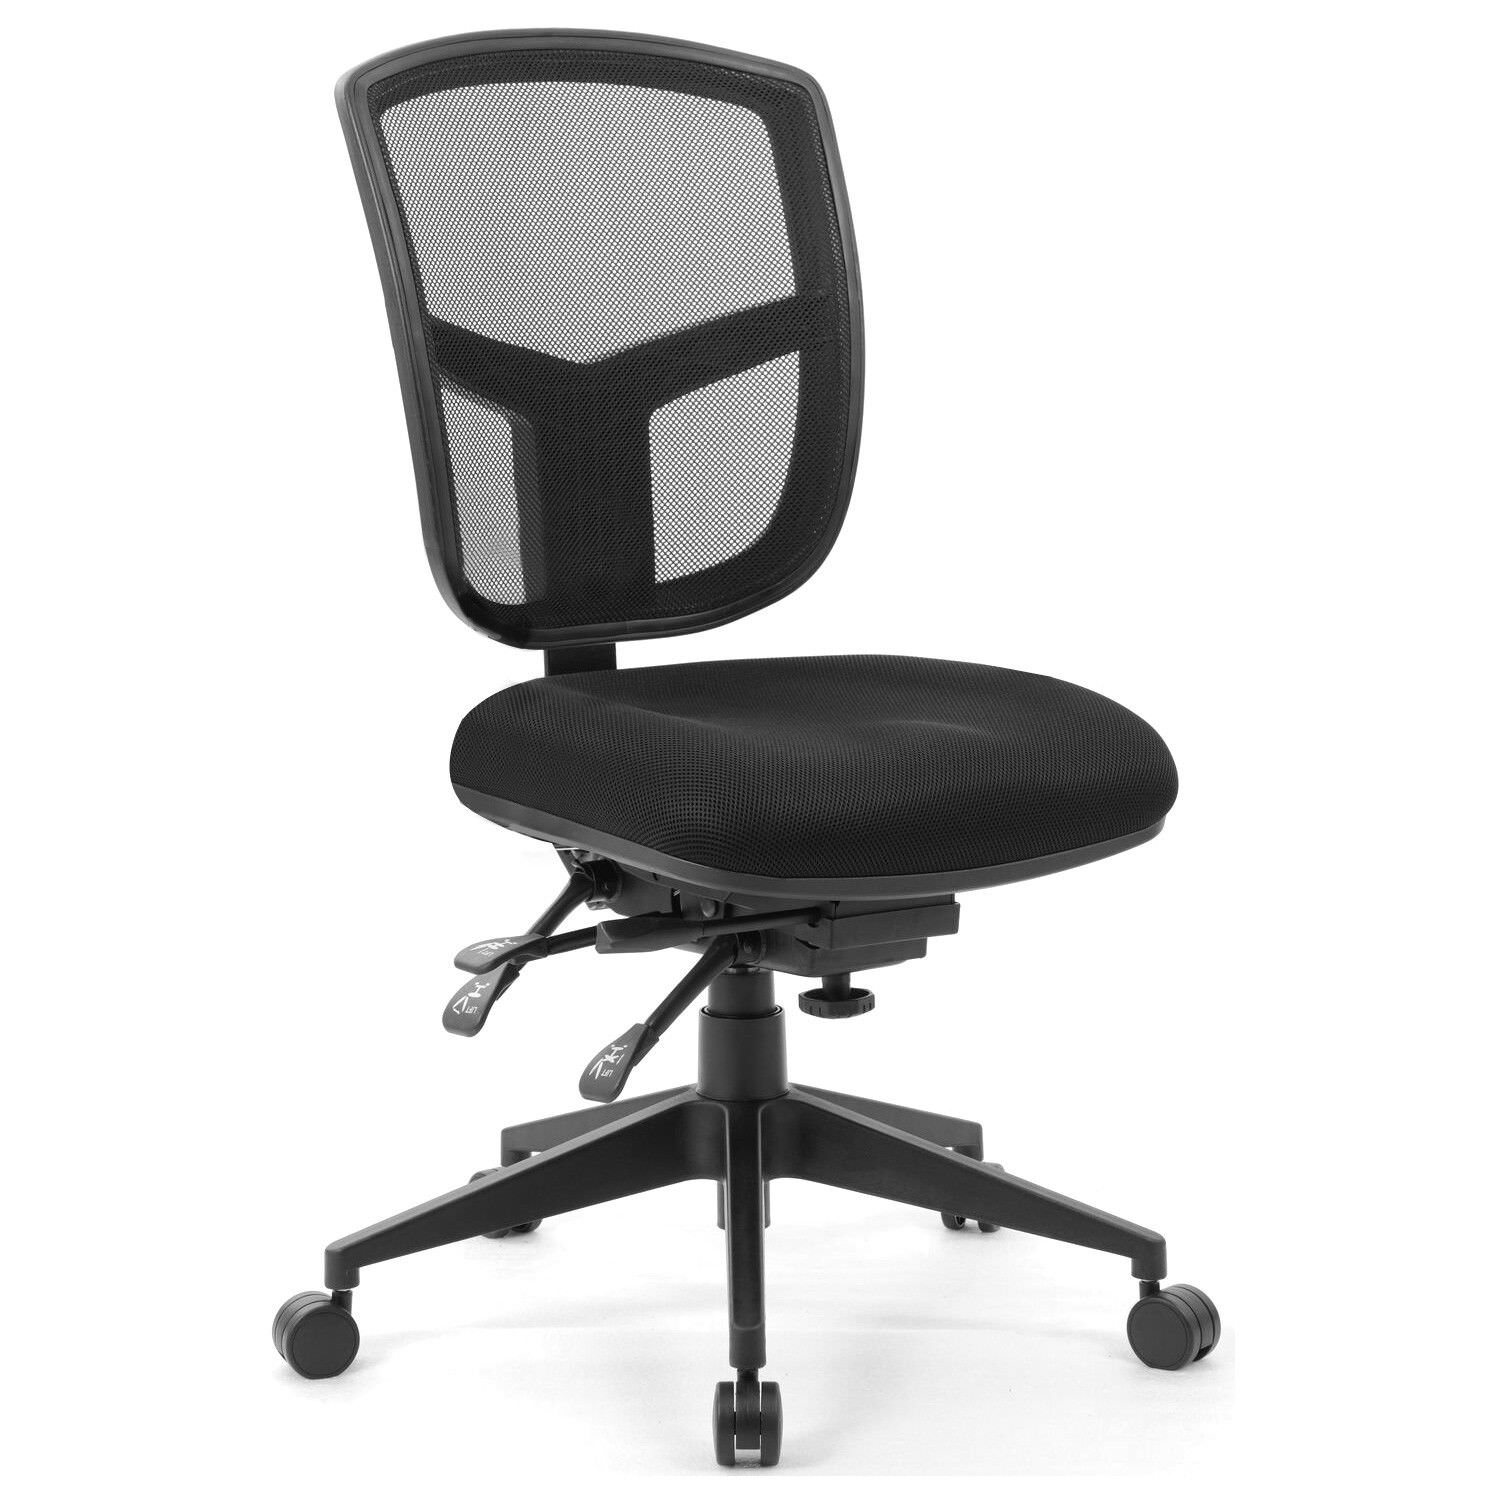 Miami Fabric Office Chair